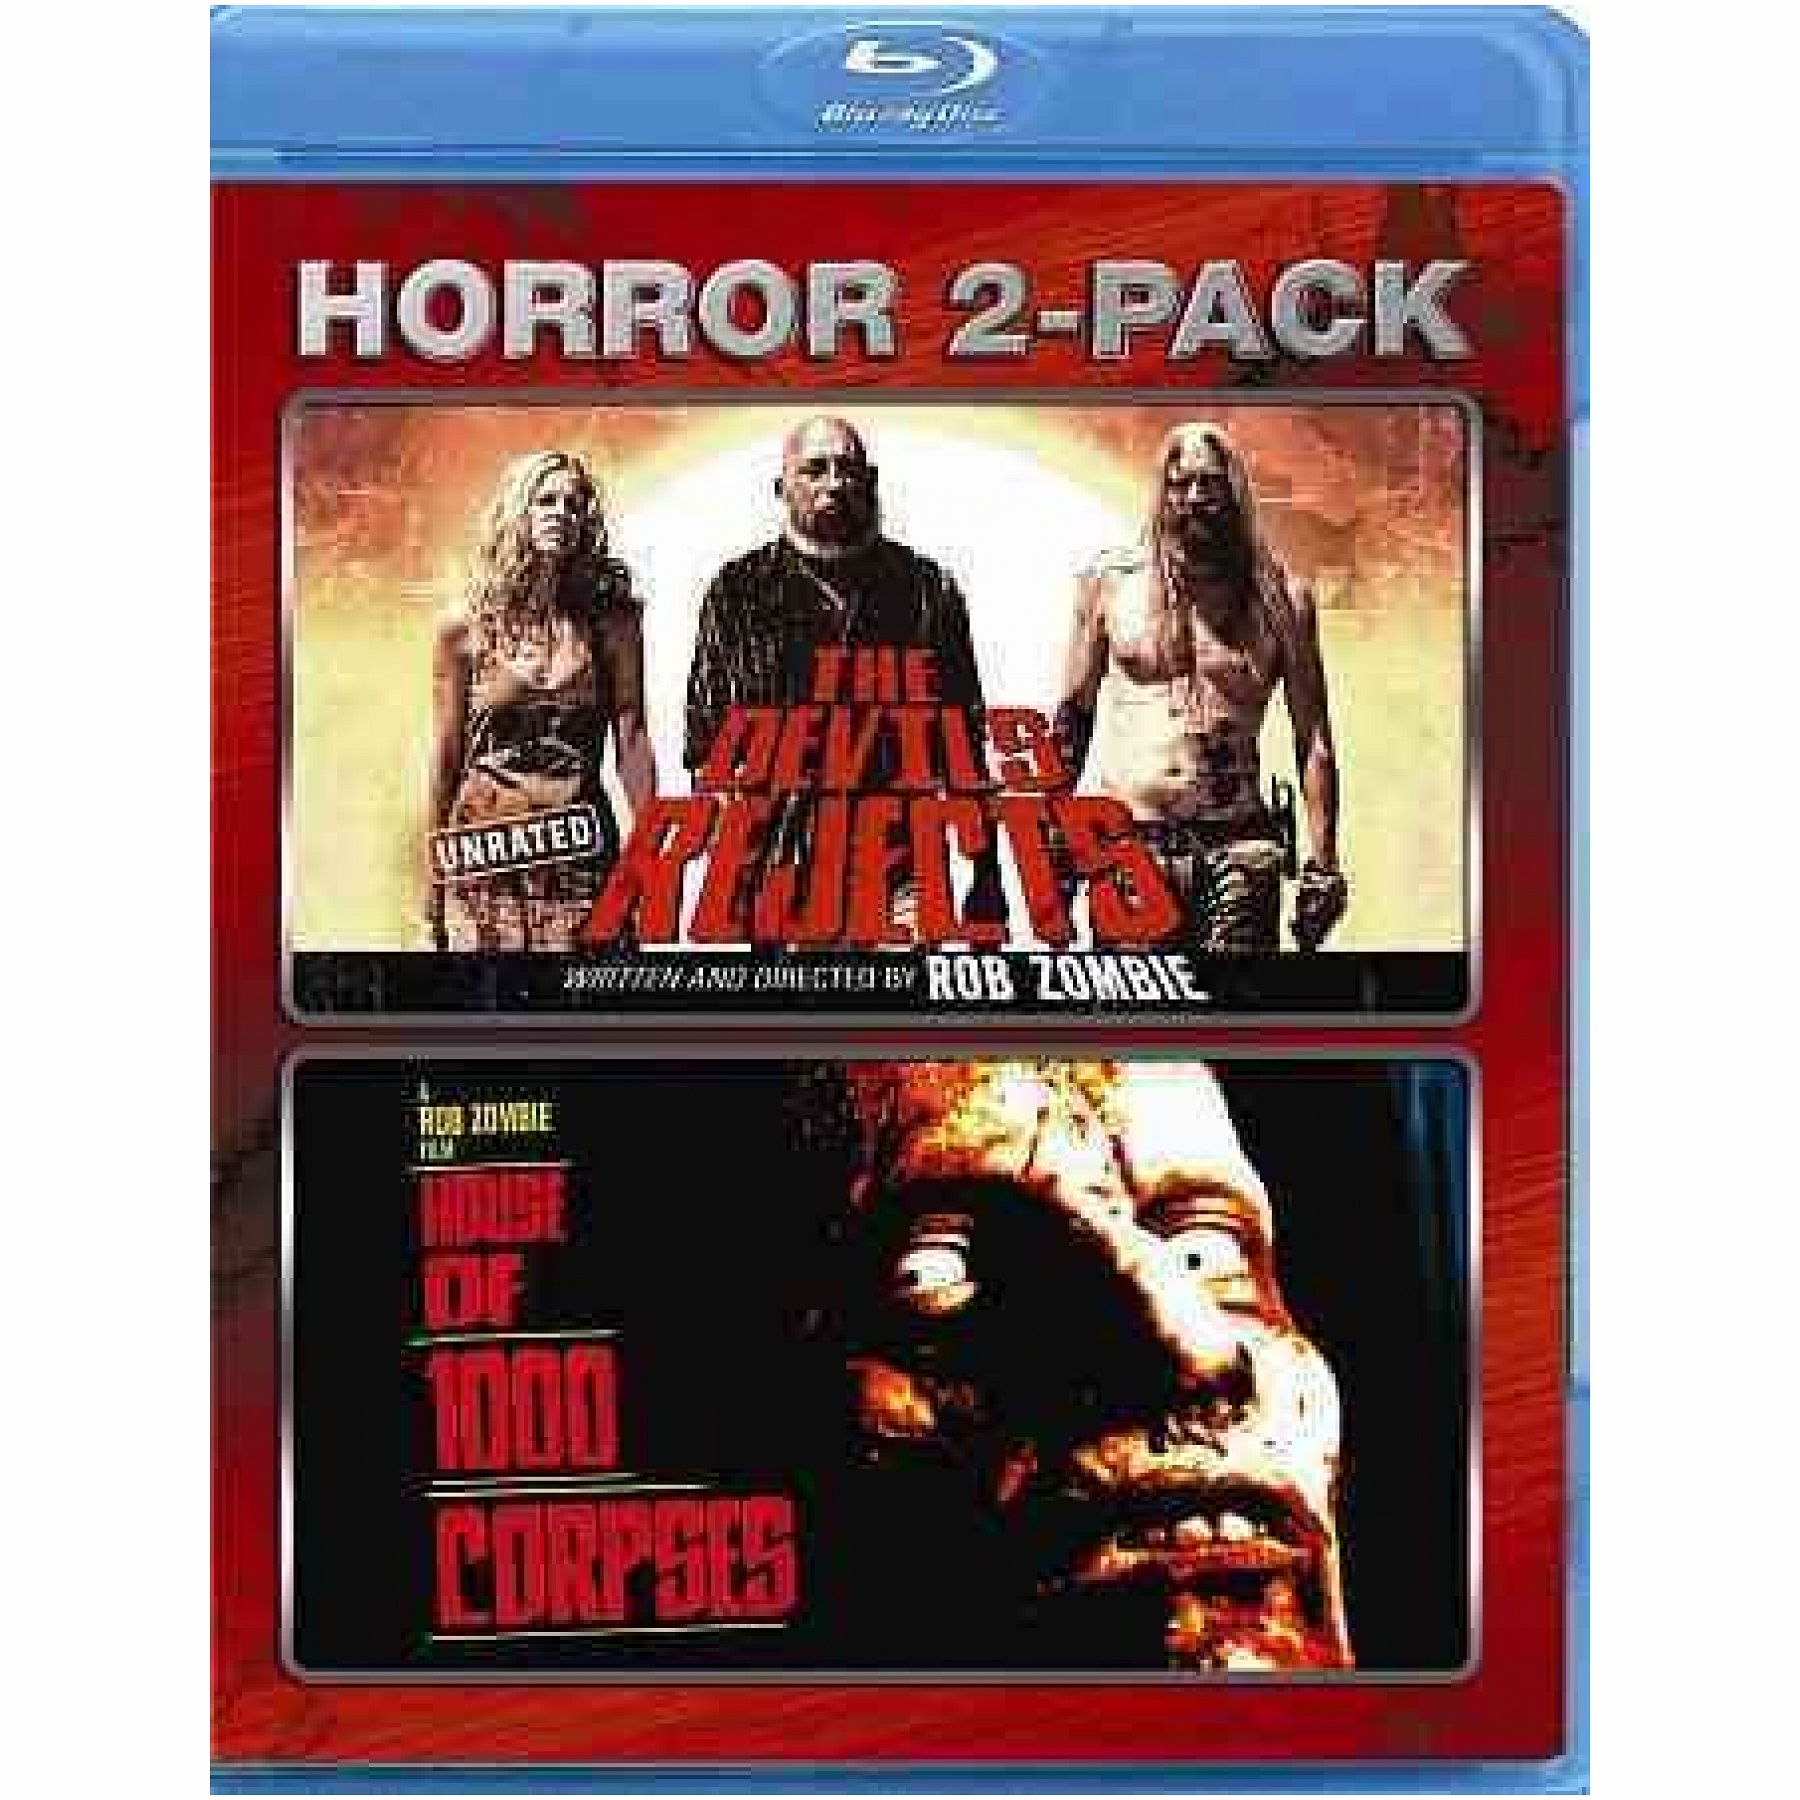 Devil's Rejects/House Of 1000 Corpse 00001775